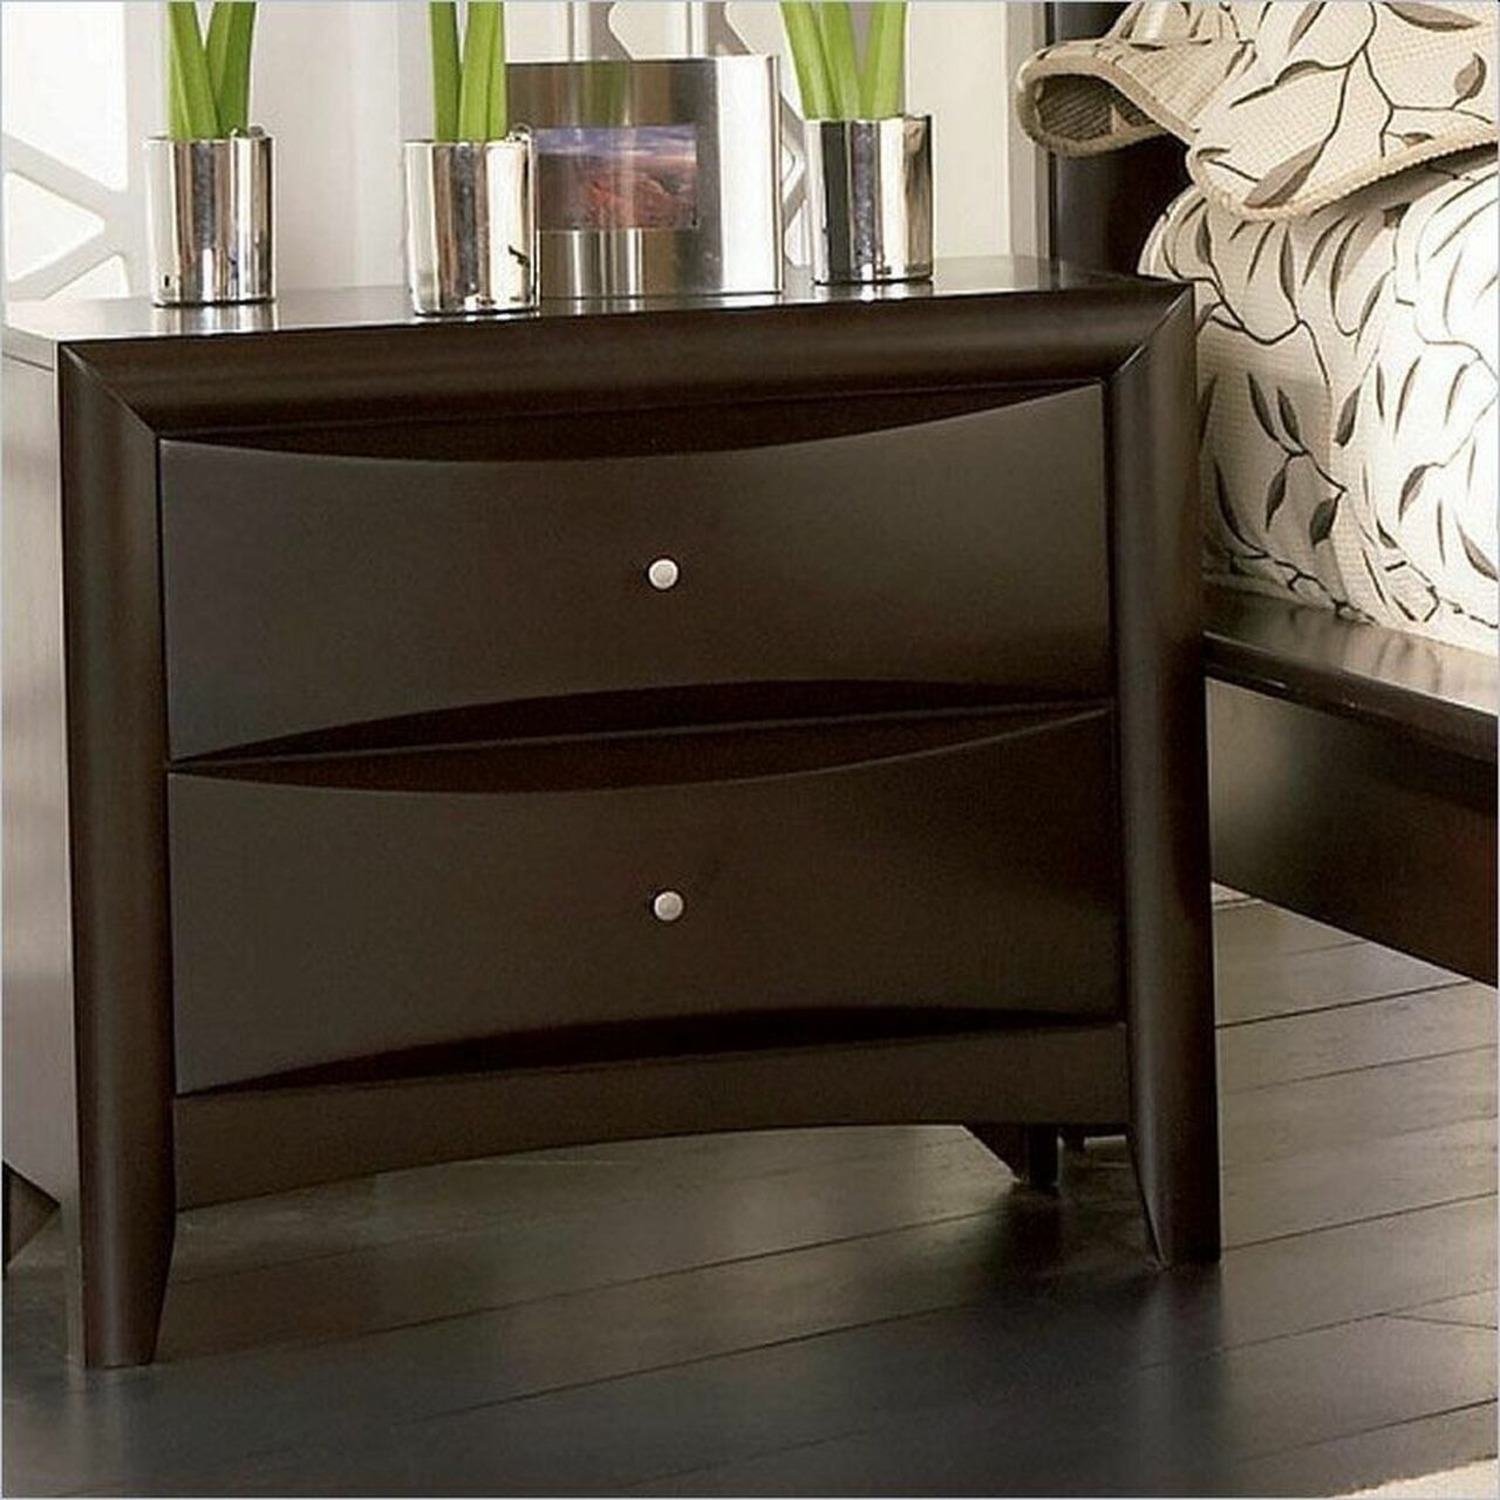 Nightstand In Cappuccino Finish w/ Nickel Knobs - image-2